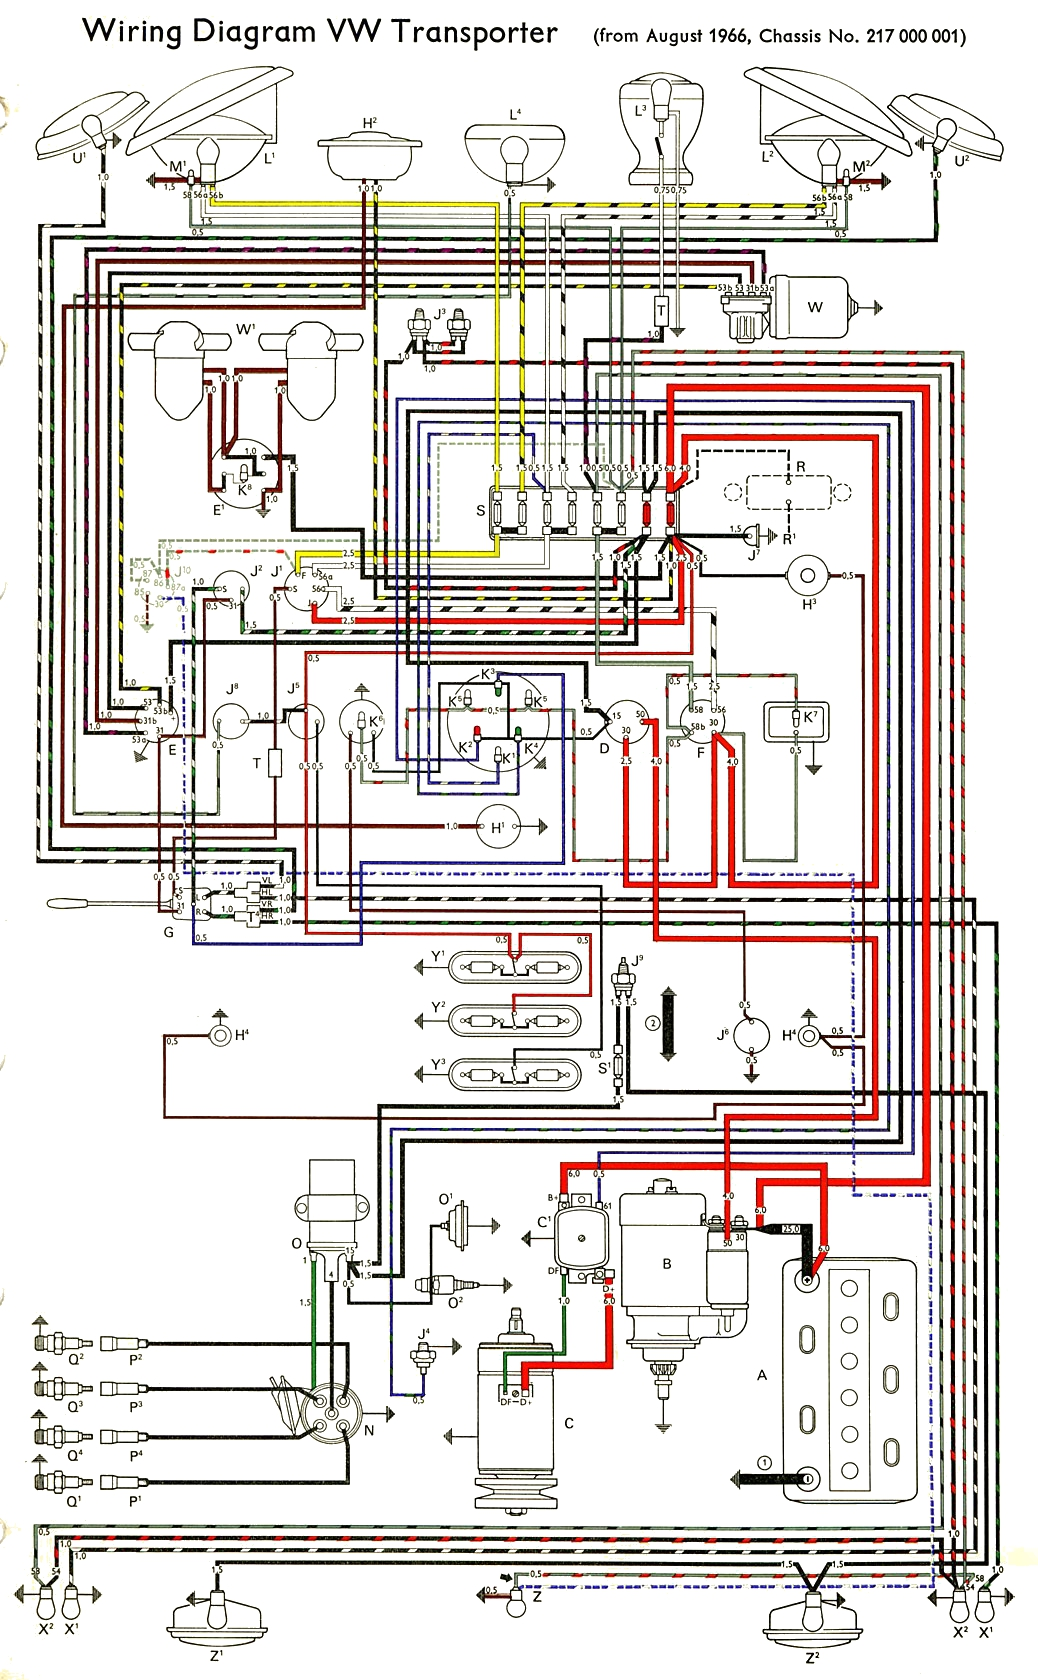 Type 2 Wiring Diagrams 1967 Camaro Speedometer Diagram